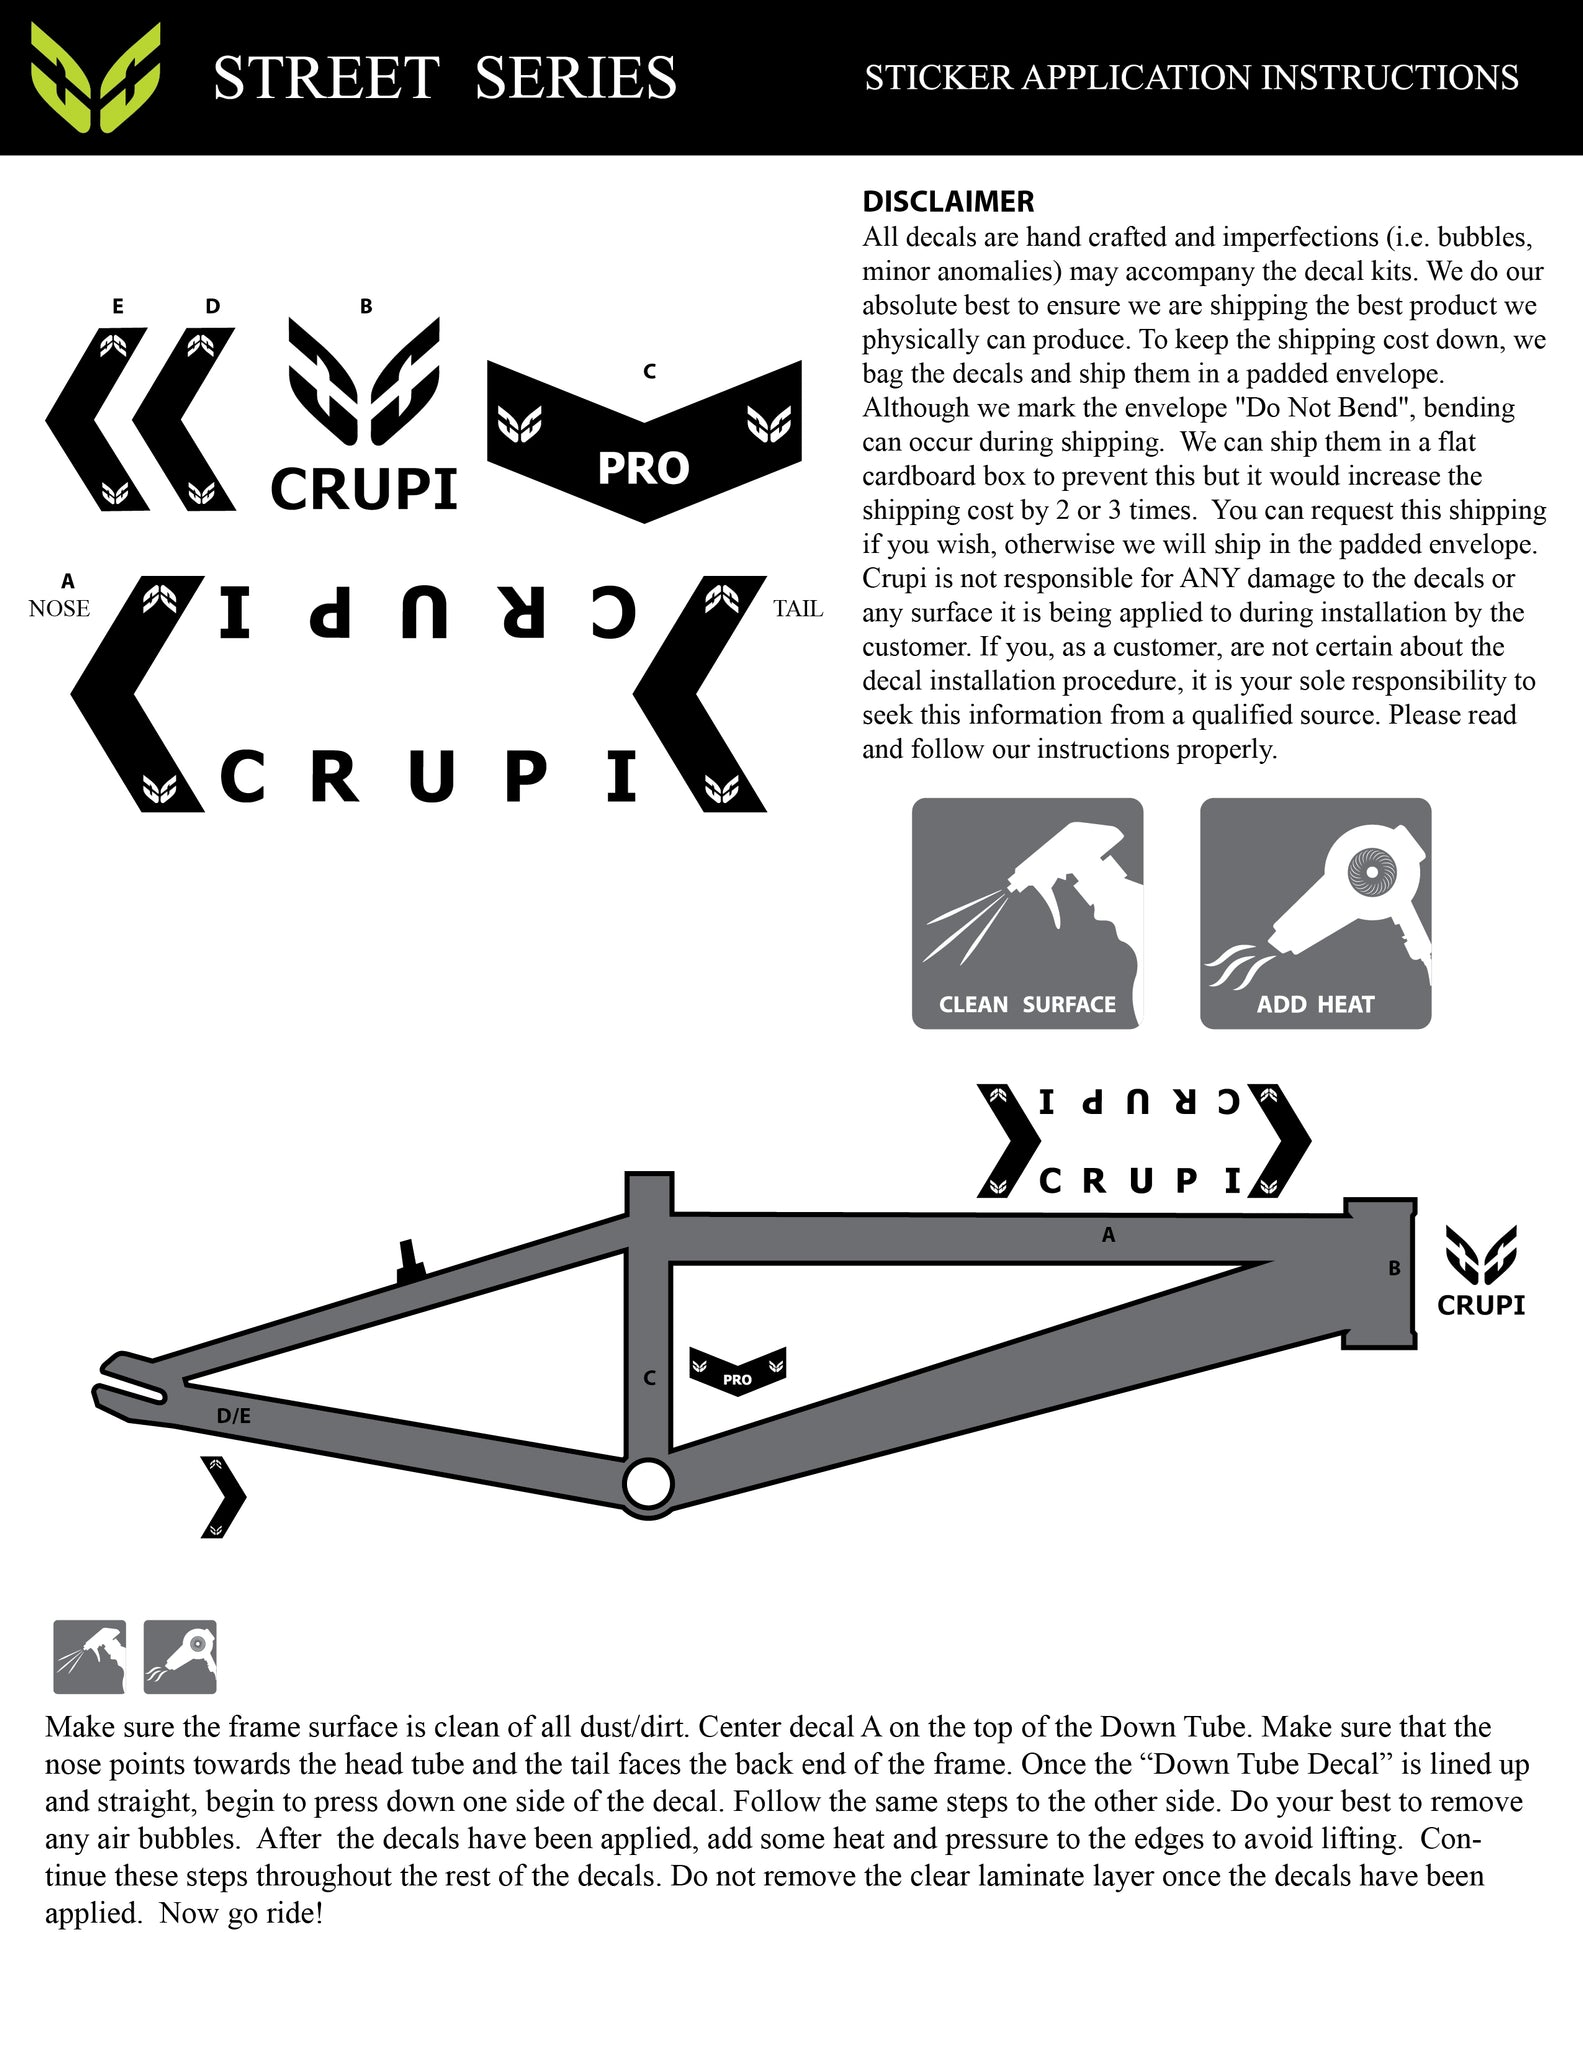 graphic regarding Decal Application Instructions Printable identified as Highway Collection Decal Software Crupi BMX